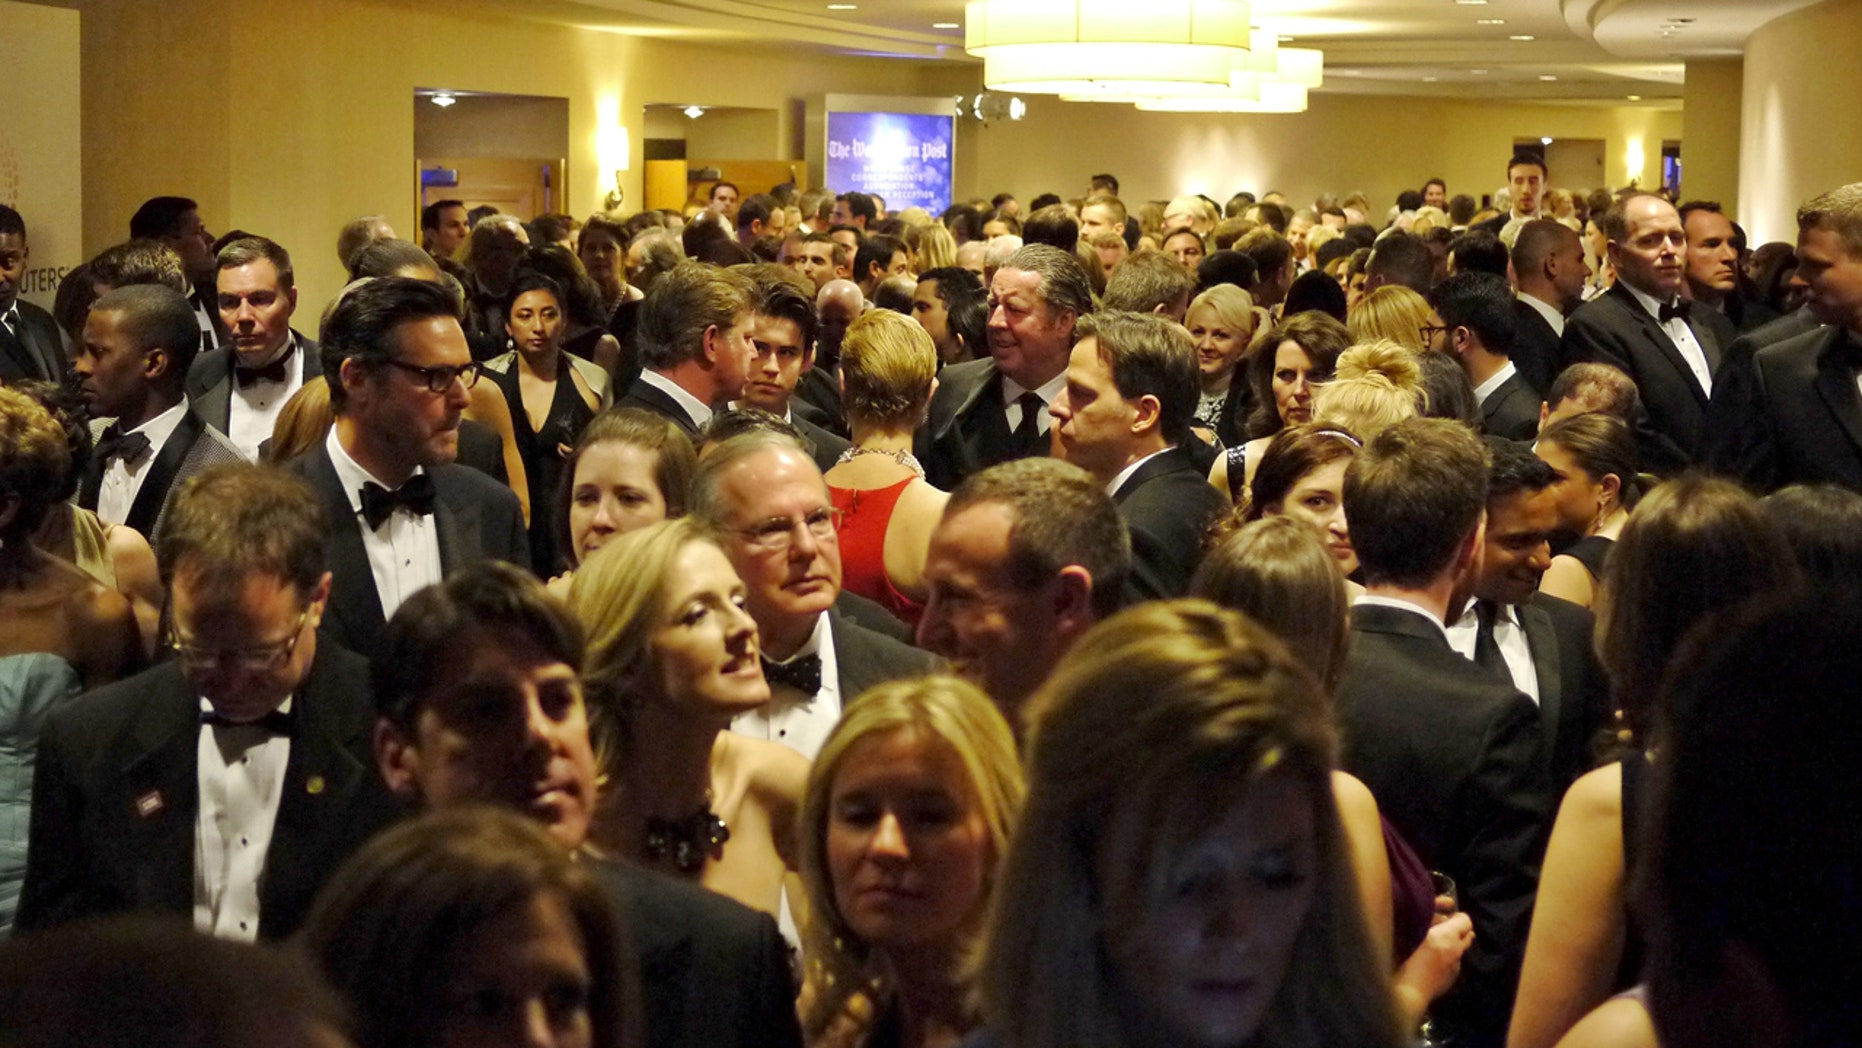 People crowd into the hallways as they leave their pre-parties to go to the ballroom for the White House Correspondents' Association dinner in Washington April 25, 2015.